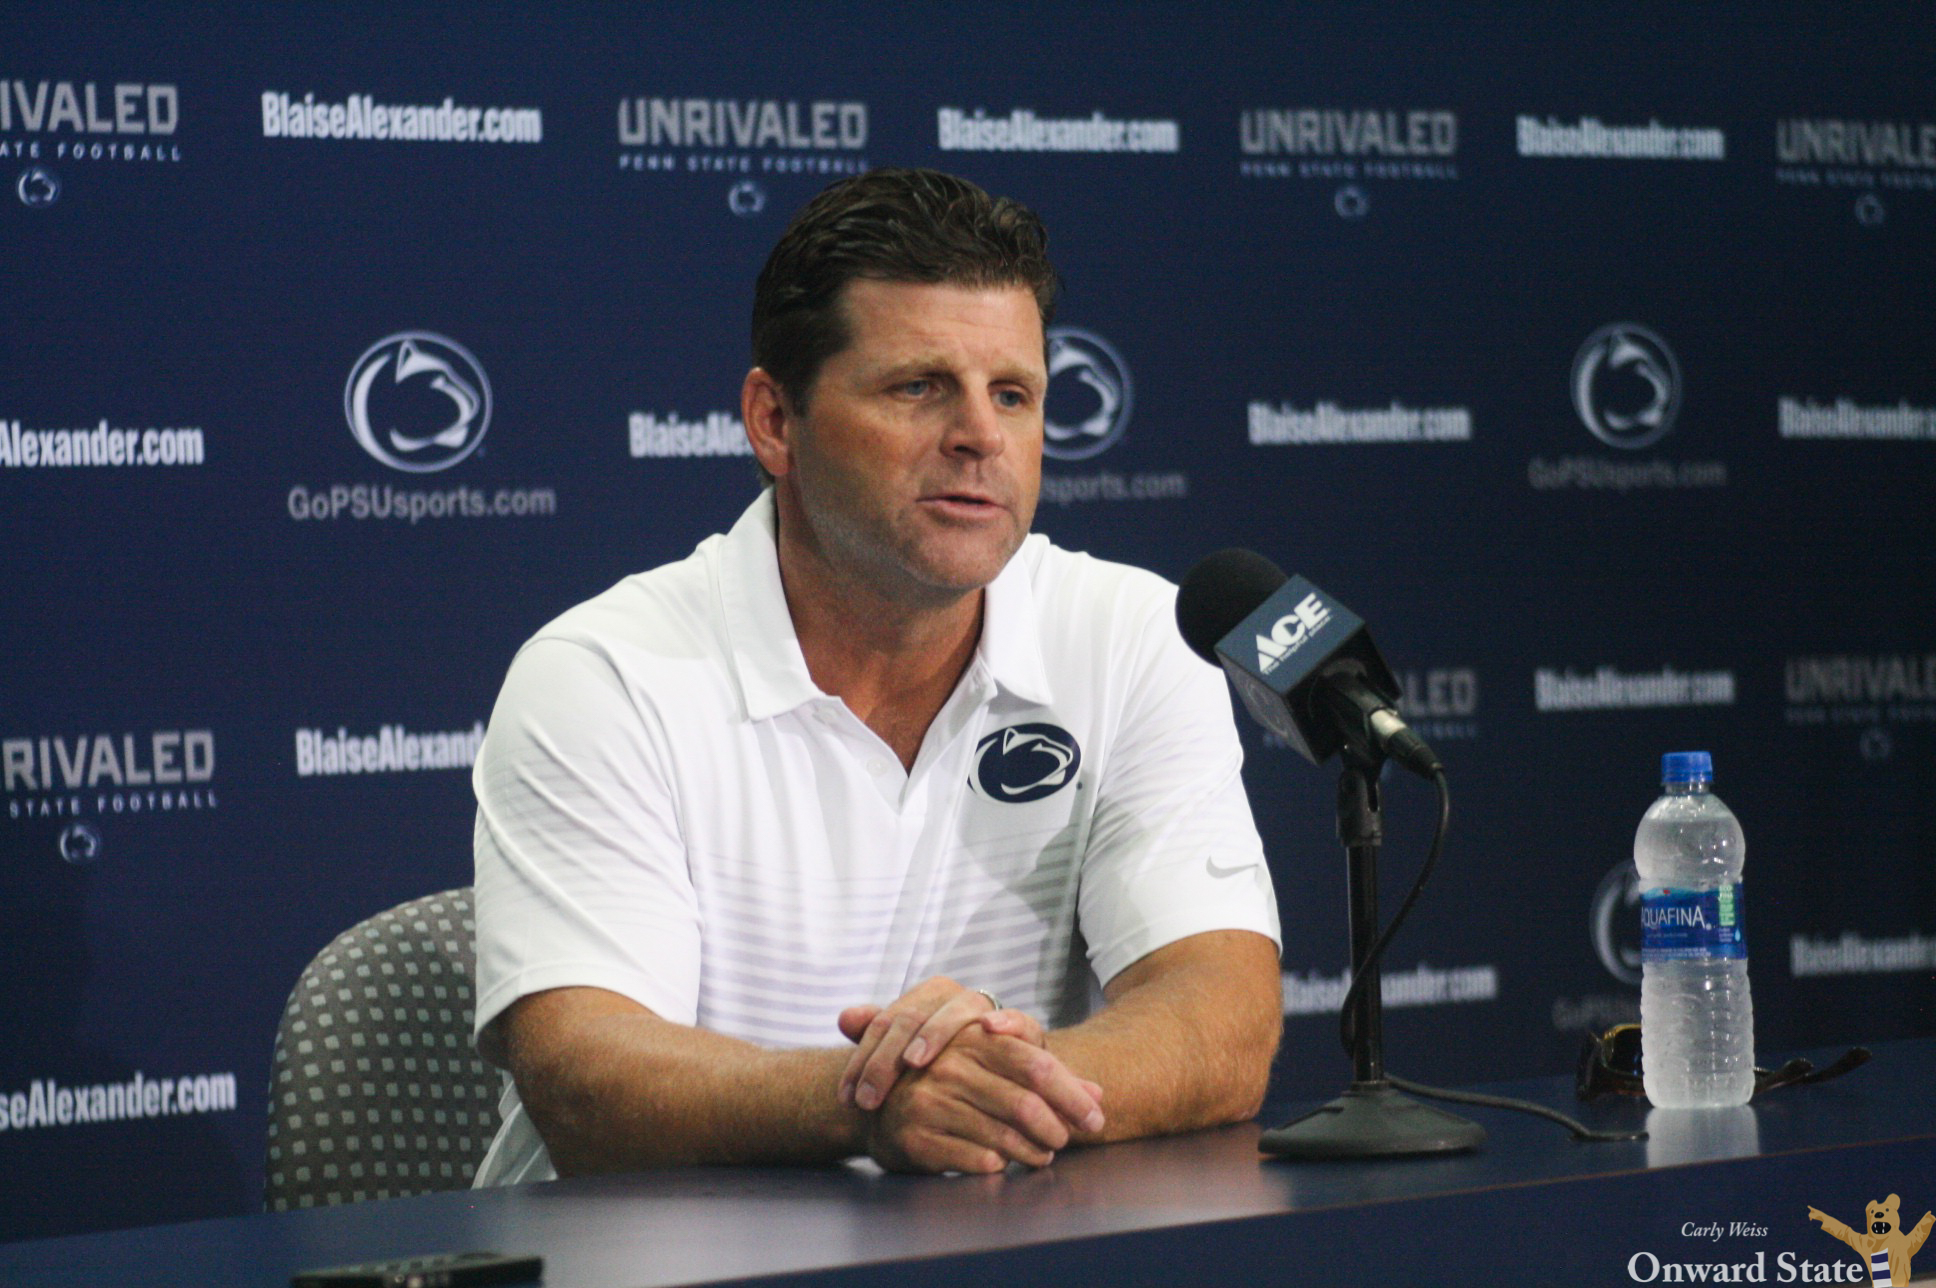 Ex-PSU doctor alleges pressure to clear players